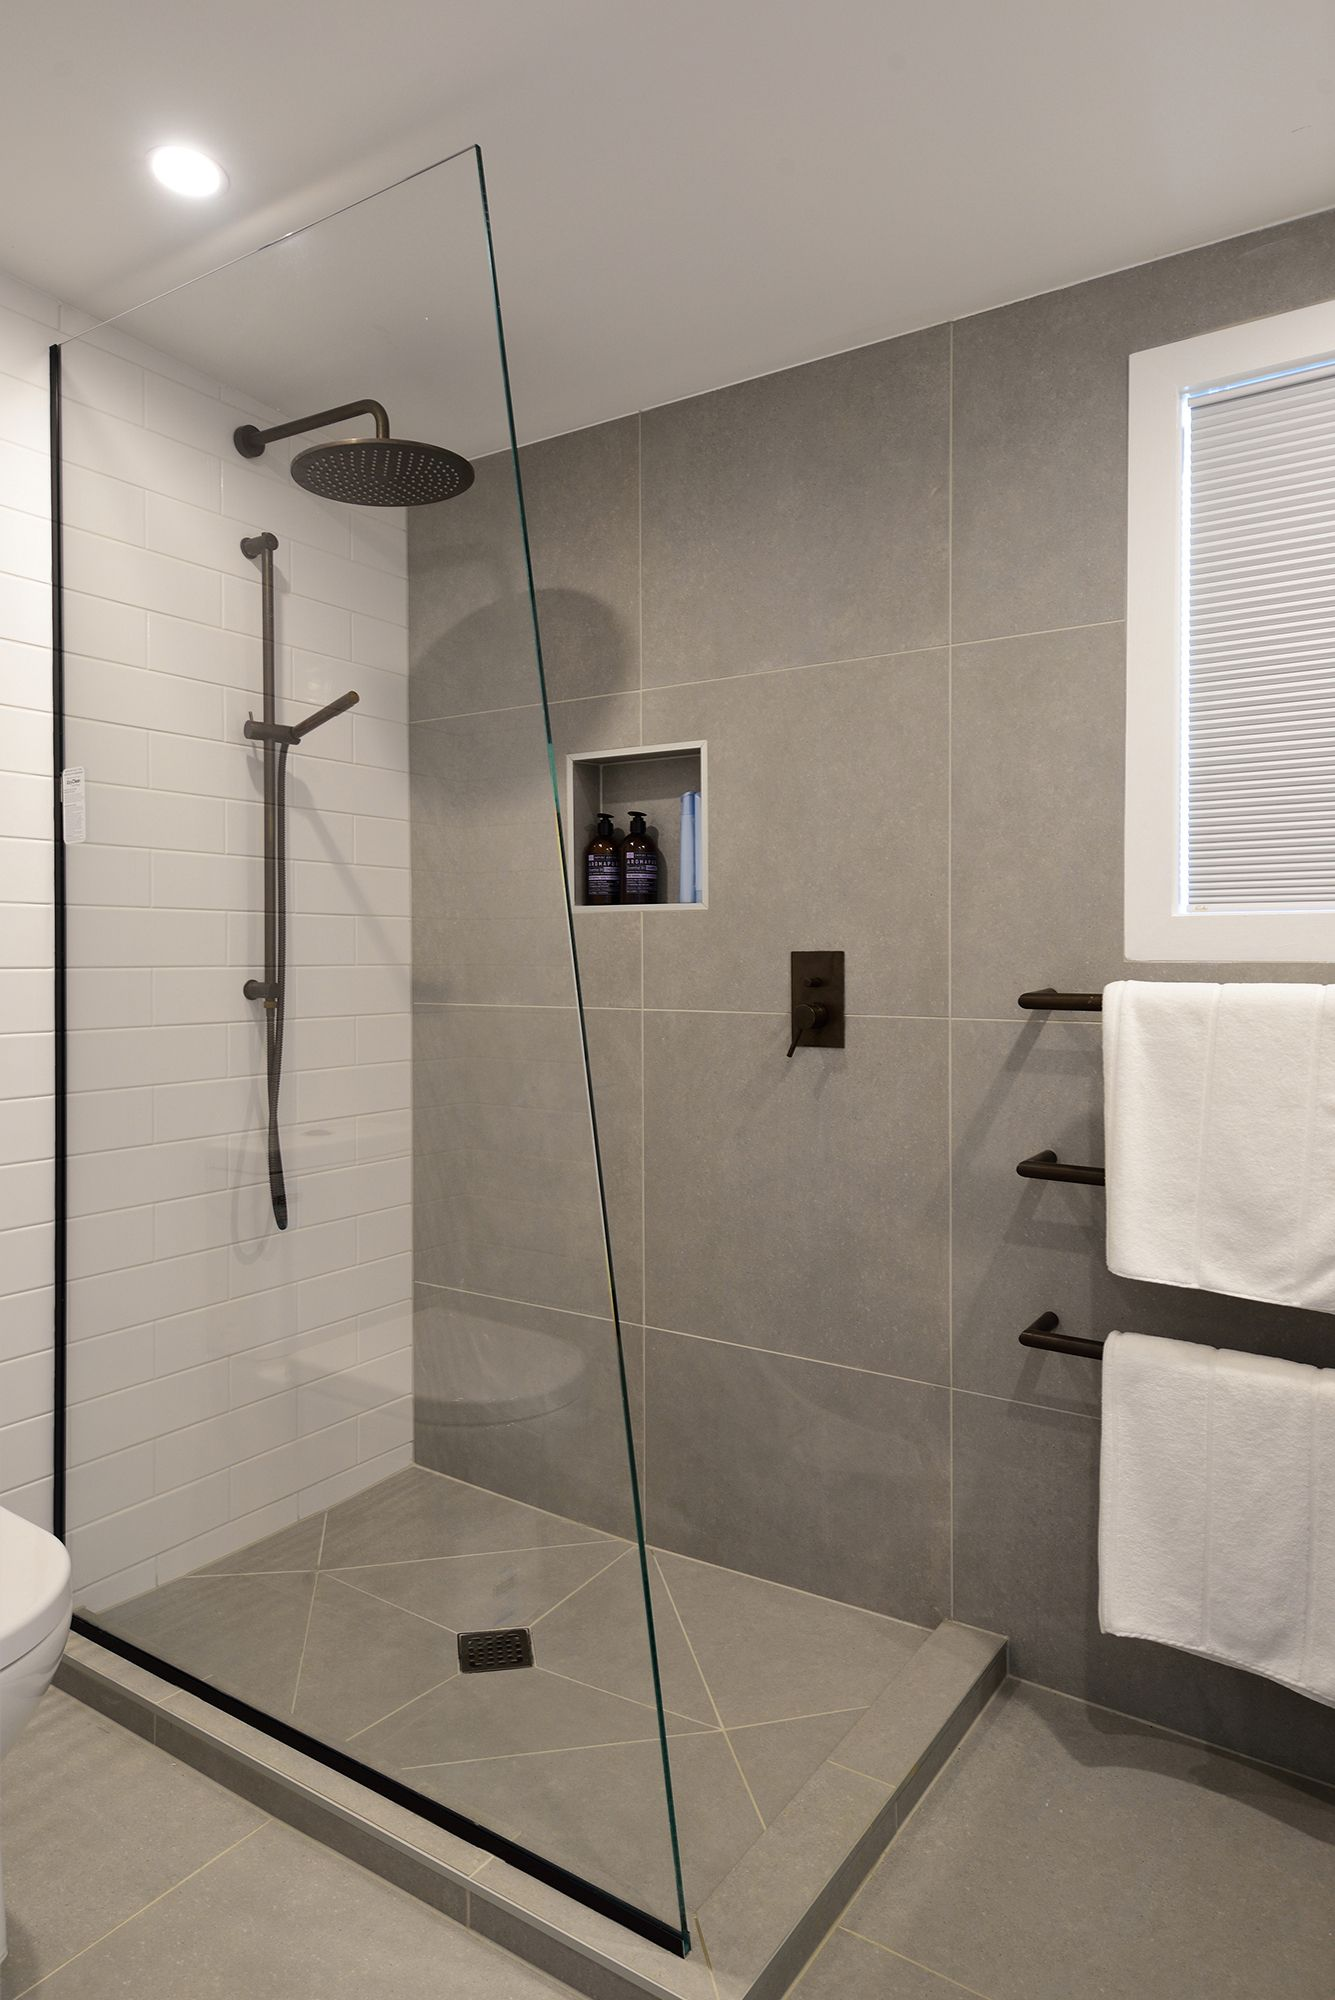 Shower Walls And Floor Grigio Tecno 600 X 600 Https Www Tiles Co Nz Tile Range Tiles Bathroom Shower Walls Bathroom Design Small Minimalist Small Bathrooms